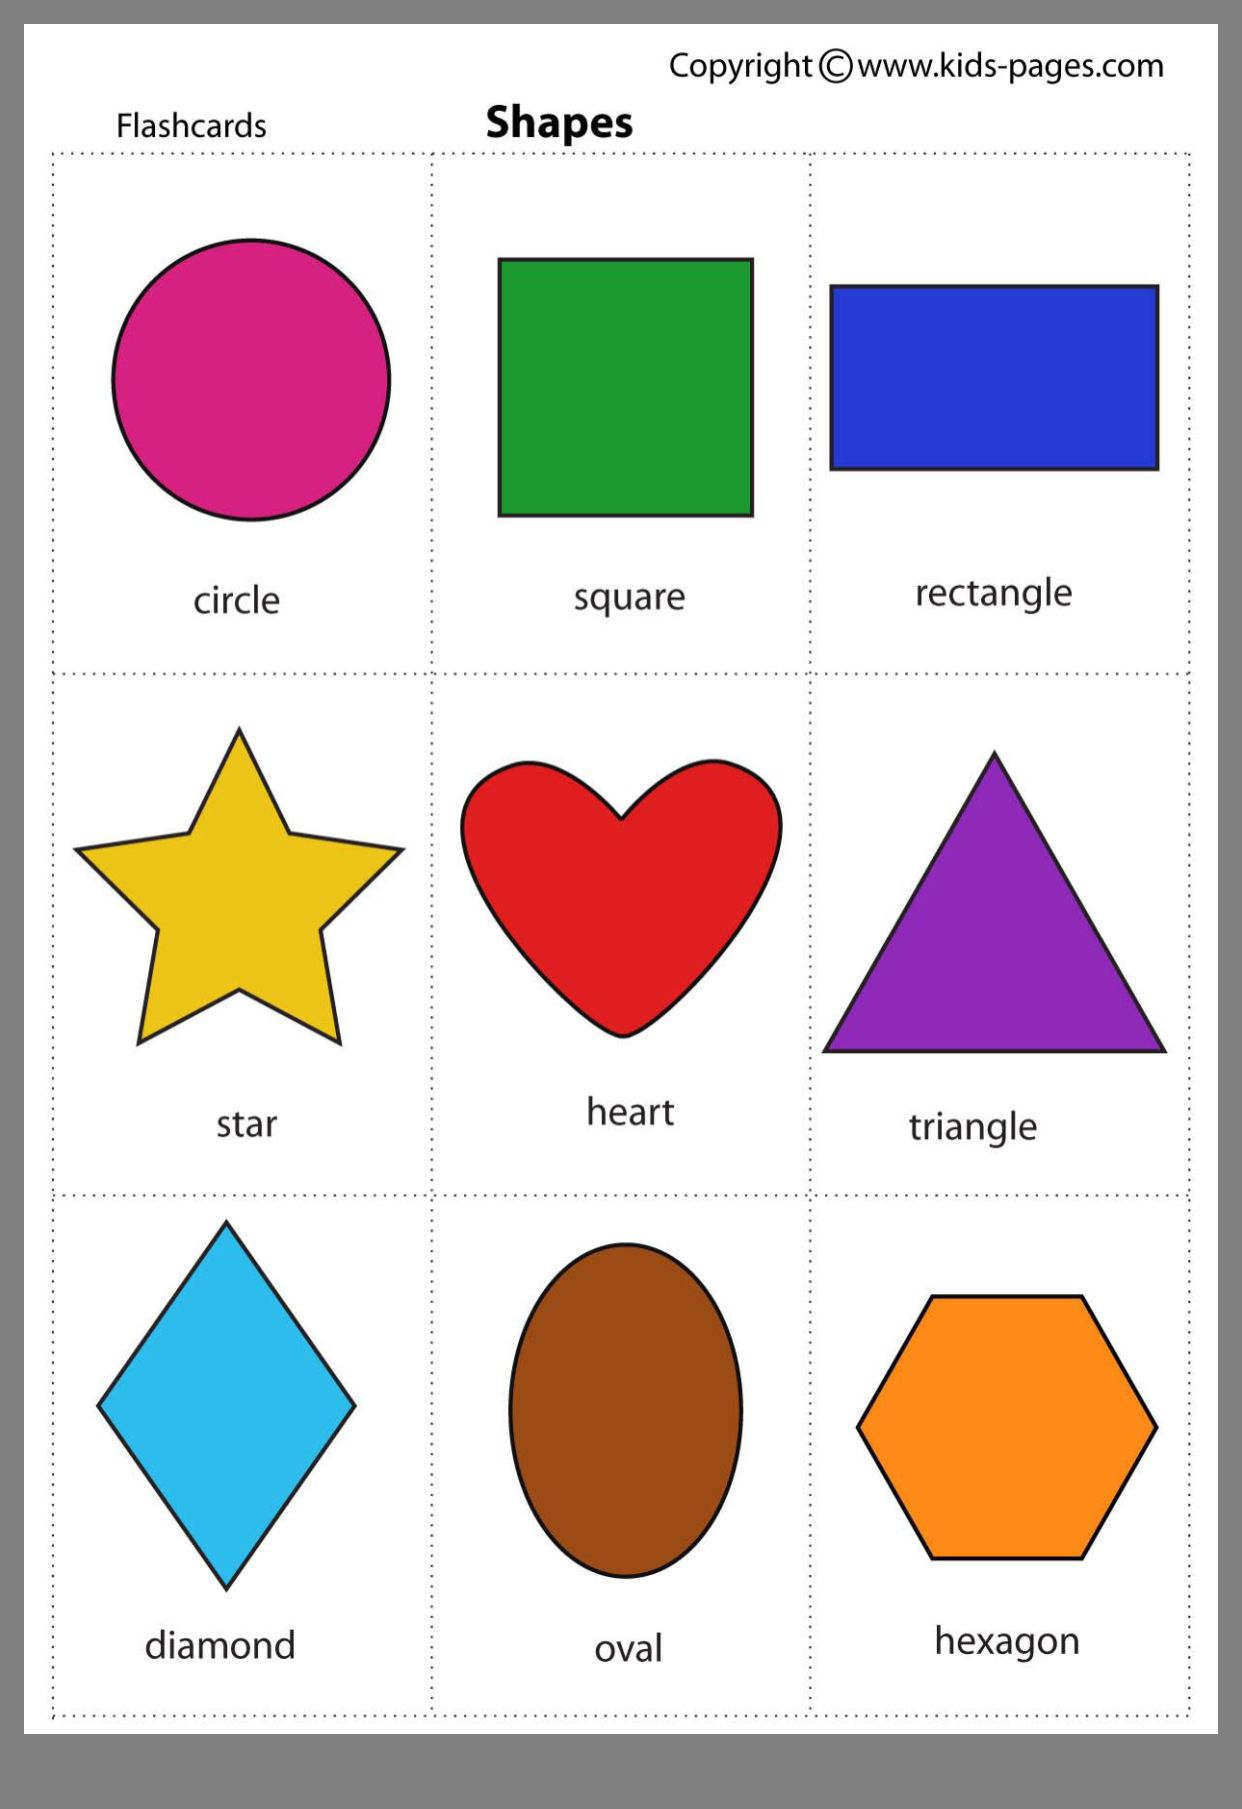 Oblici Printable shapes, Shapes flashcards, Teaching shapes